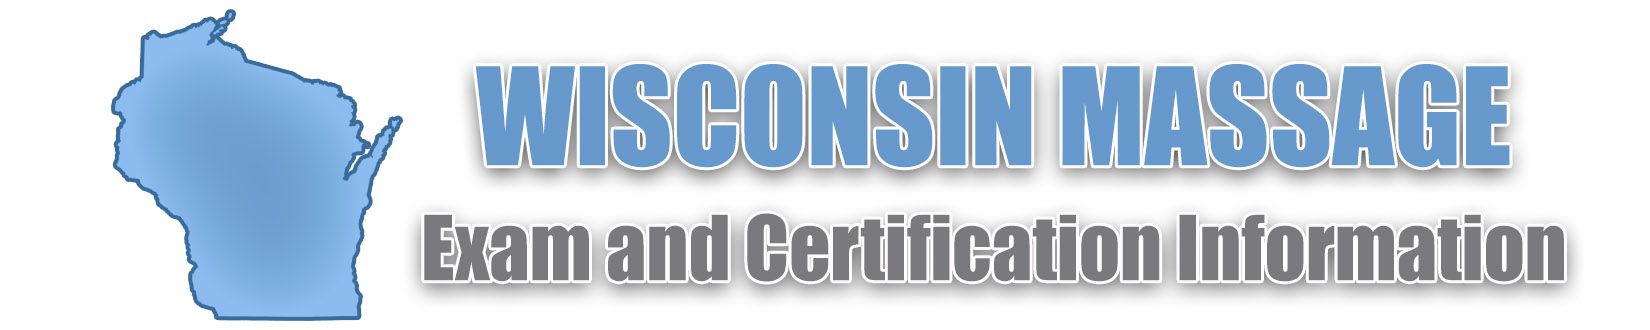 Wisconsin 2019 Massage Therapy And Board Certification Resources